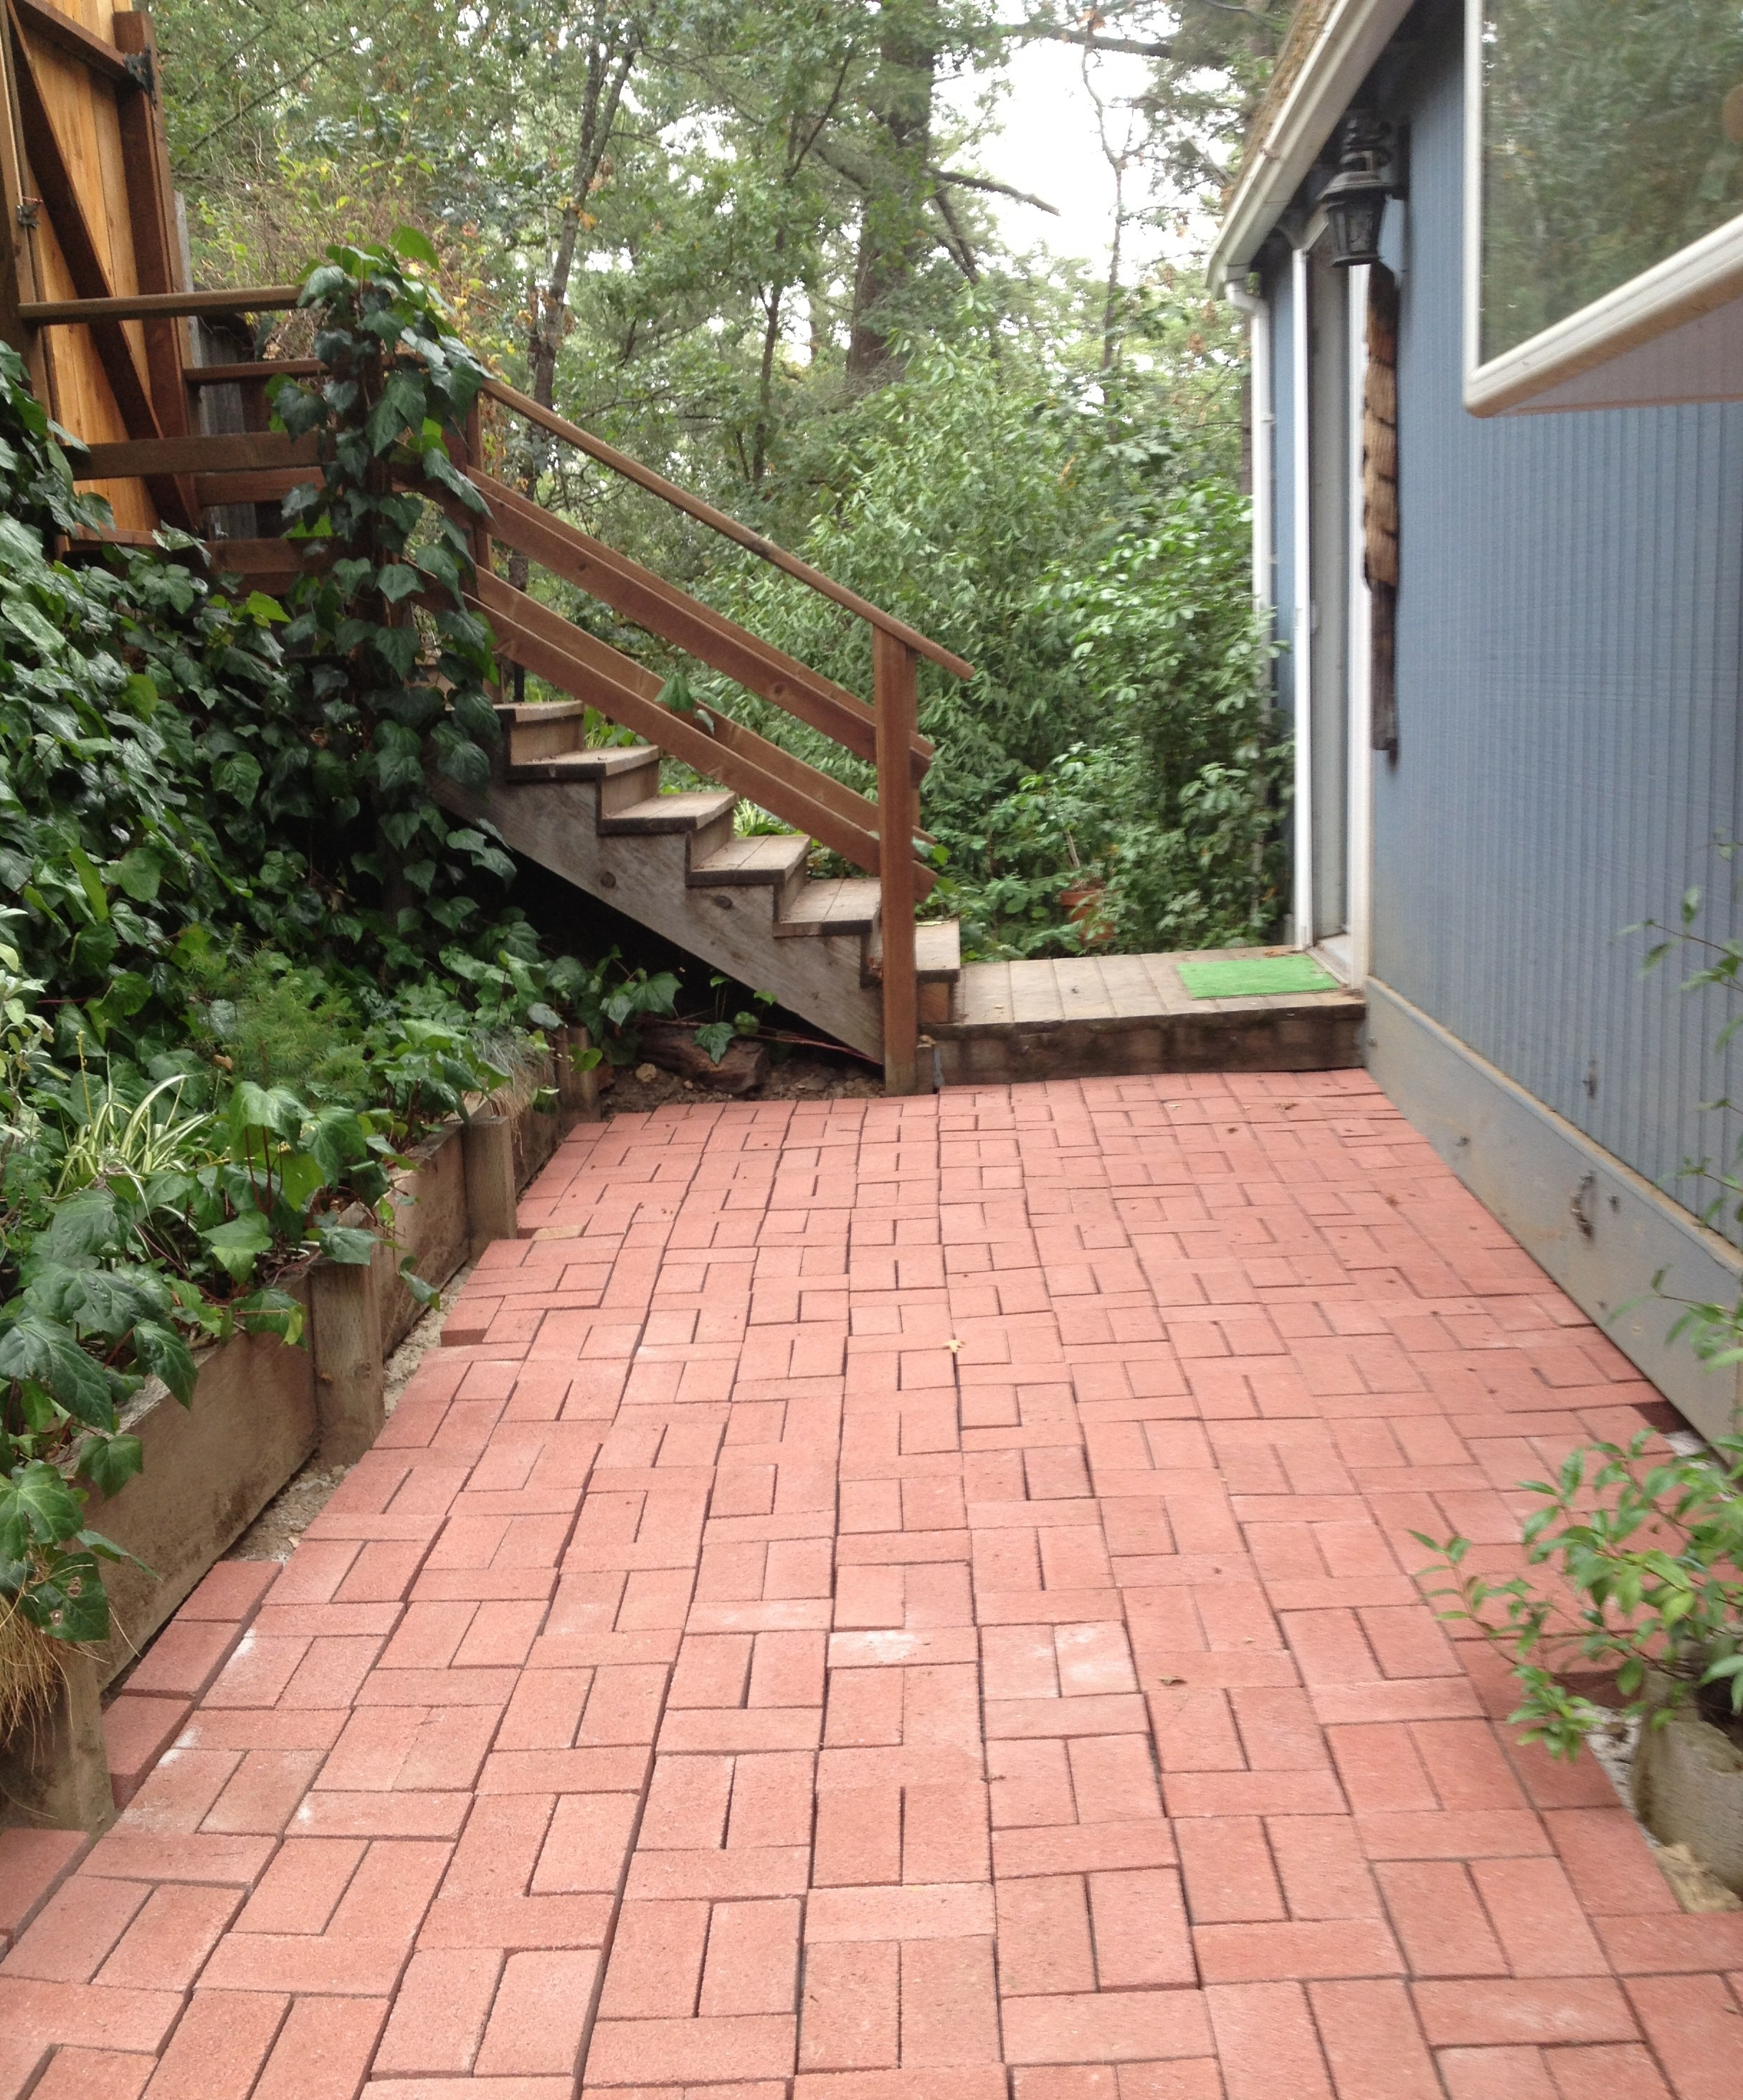 The Gift of Making: My New Brick Walkway